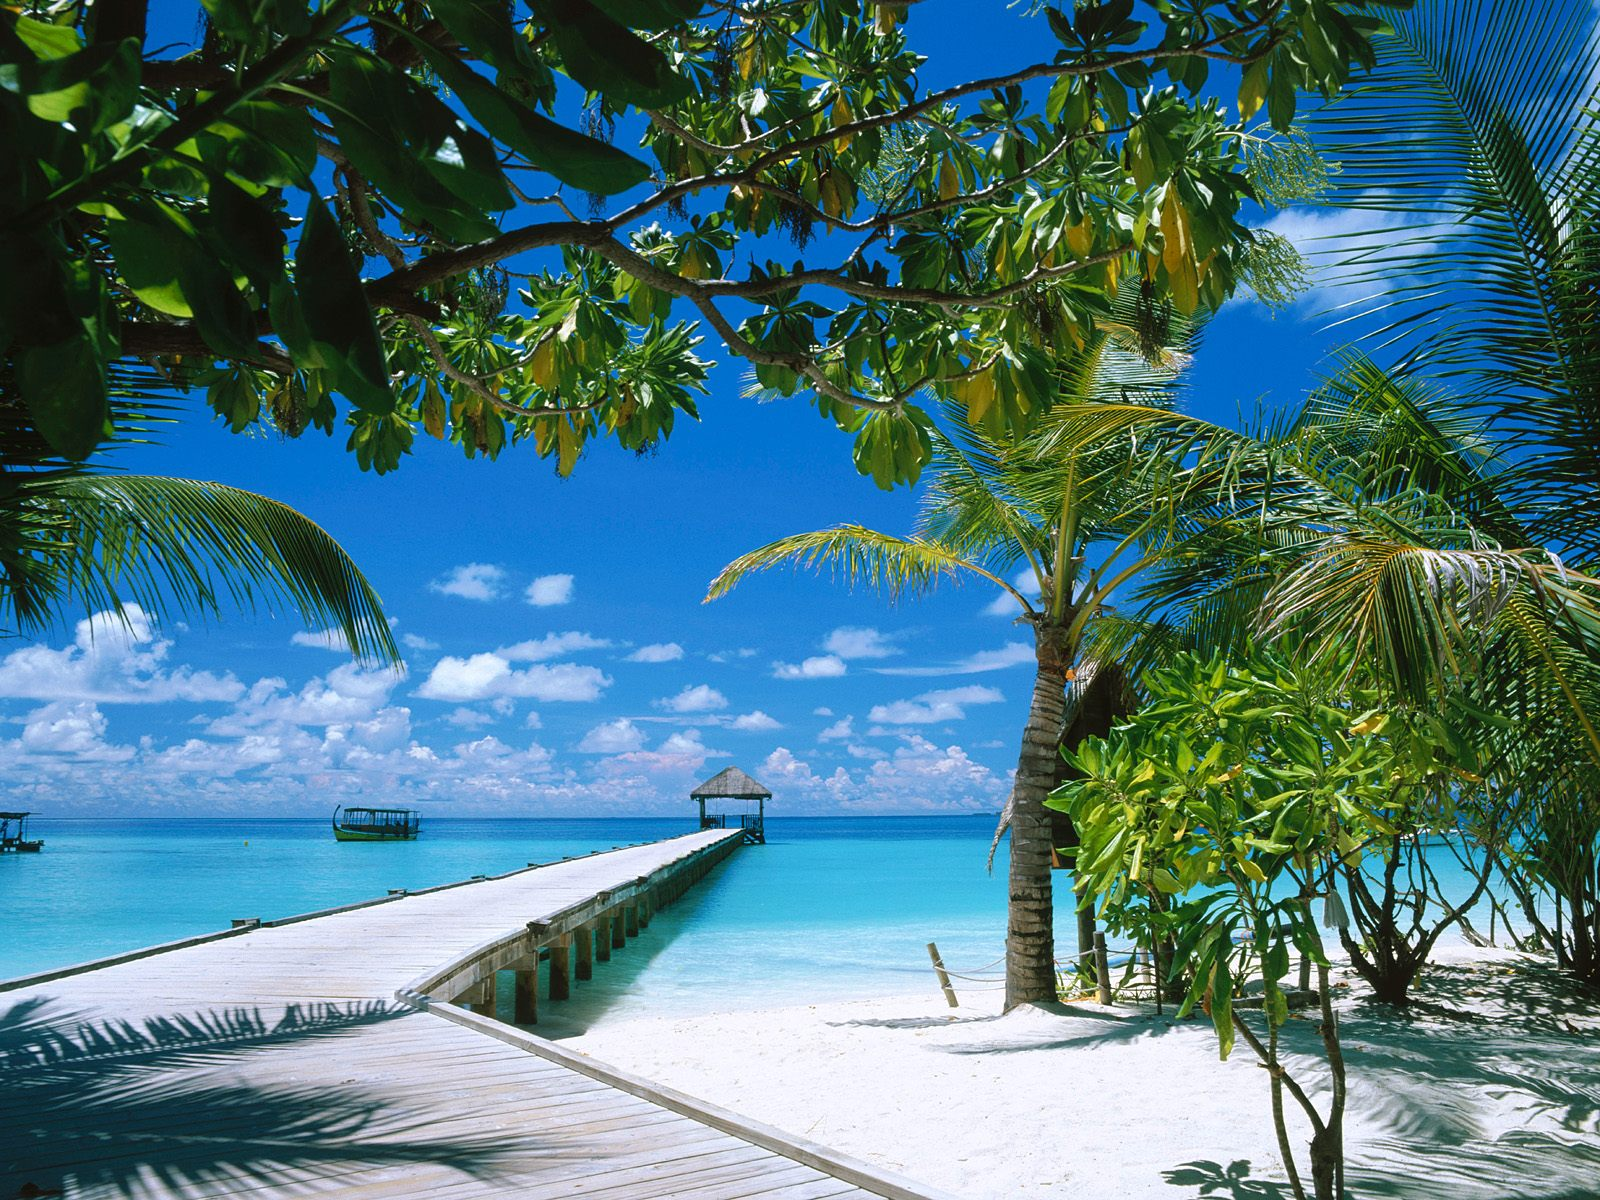 http://2.bp.blogspot.com/-0nHfW4mLwEE/TwWSXei557I/AAAAAAAAALQ/2PQmZ2fHhC8/s1600/Beautiful+Beach+Wallpapers+HD+4.jpg